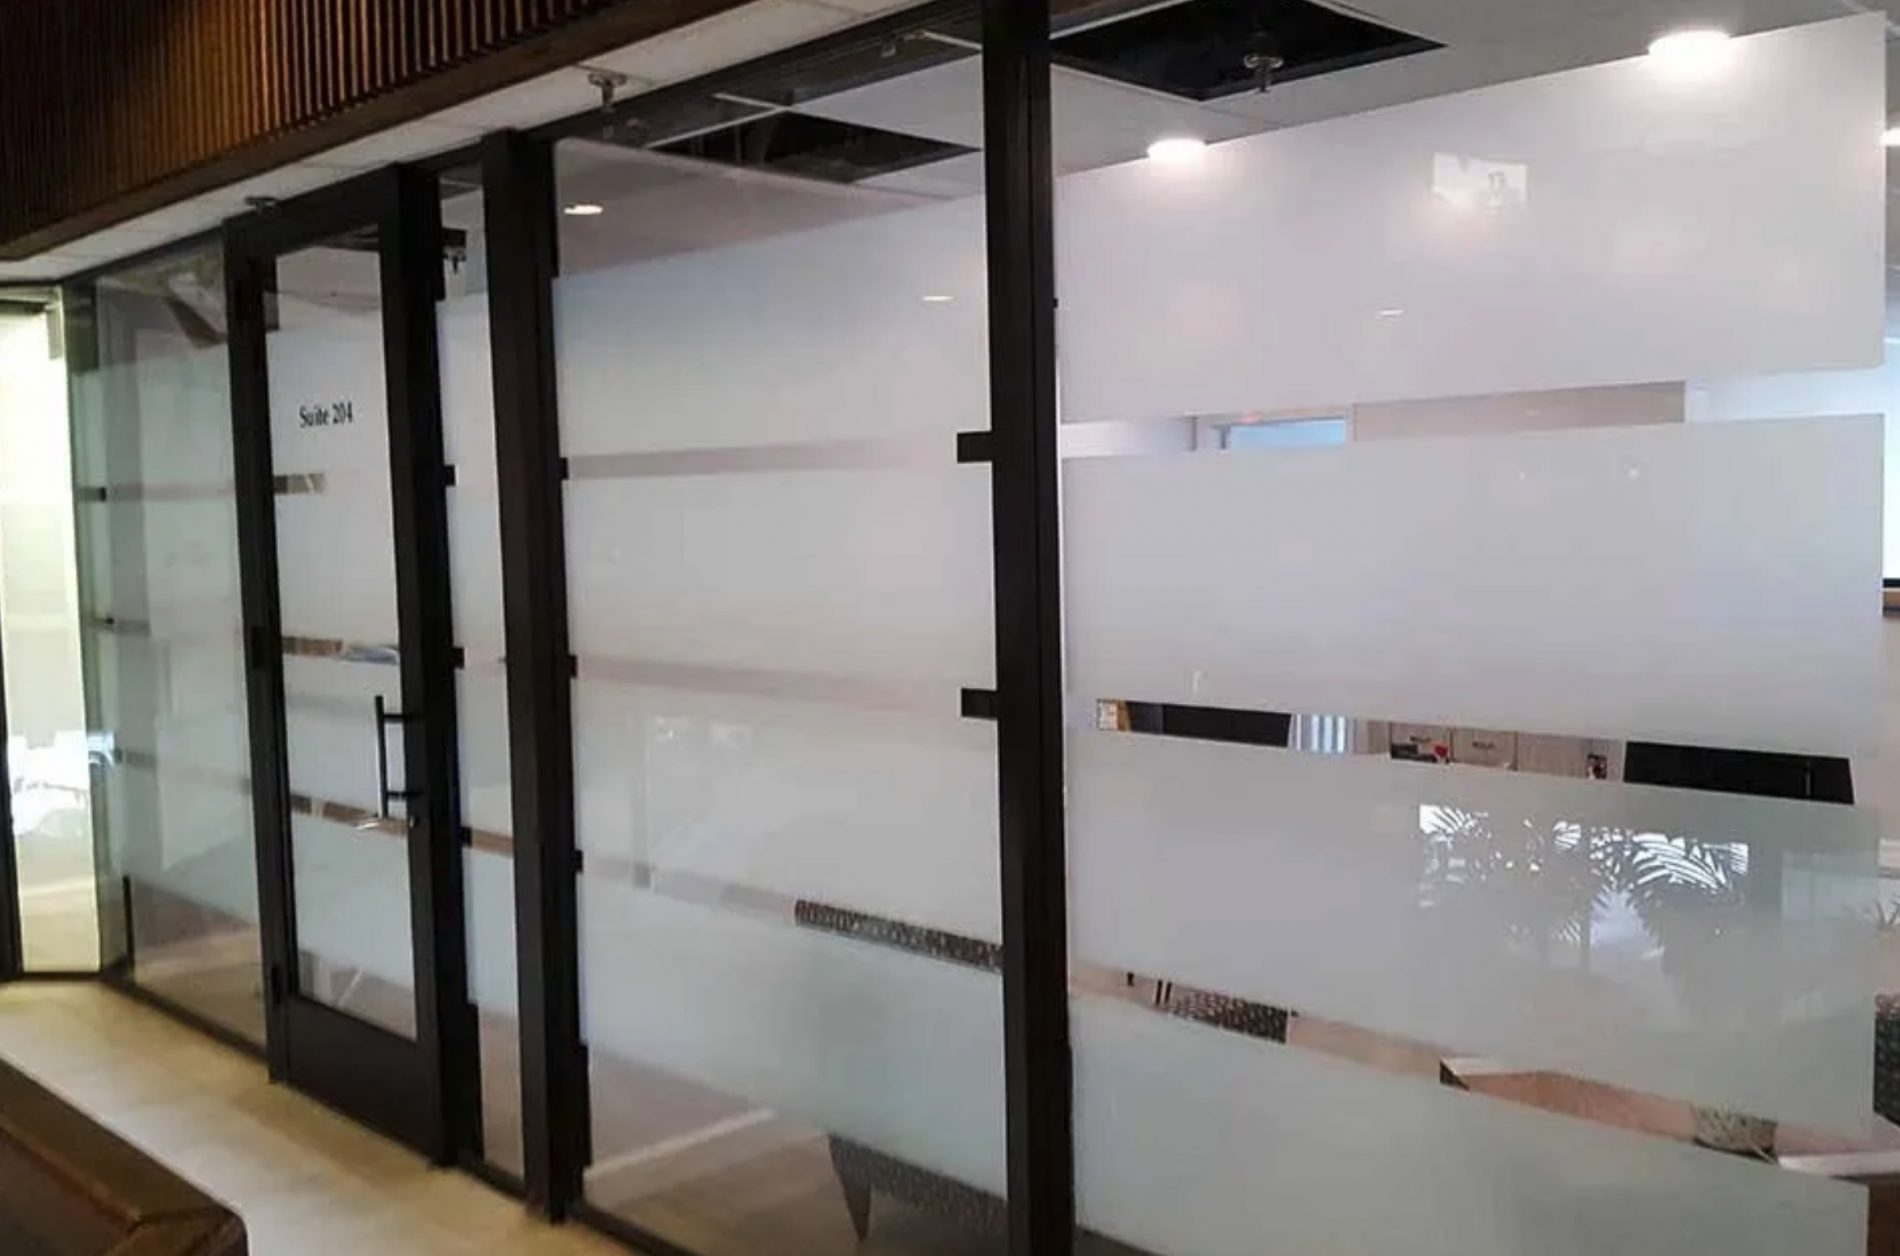 Five Reasons Decorative Glass Films are Preferred for Privacy & Branding - Decorative Window Films in Buffalo and Western New York